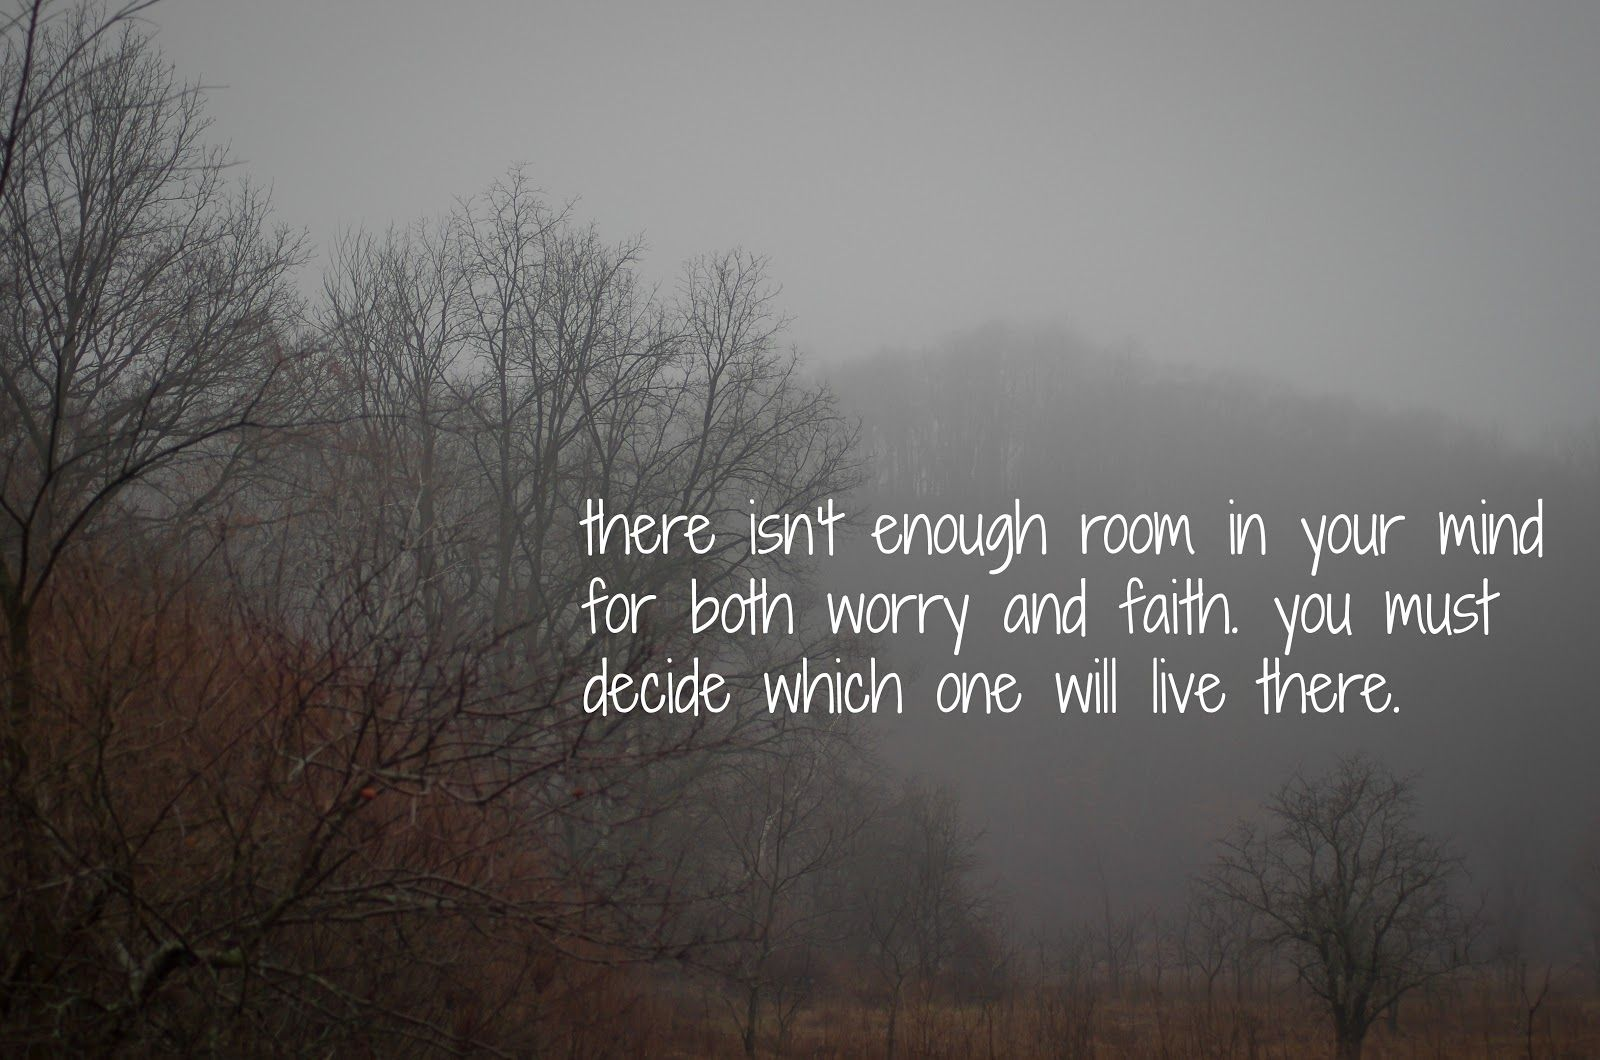 wallpaper quote pc tumblr - Google Search pc quotes Pinterest